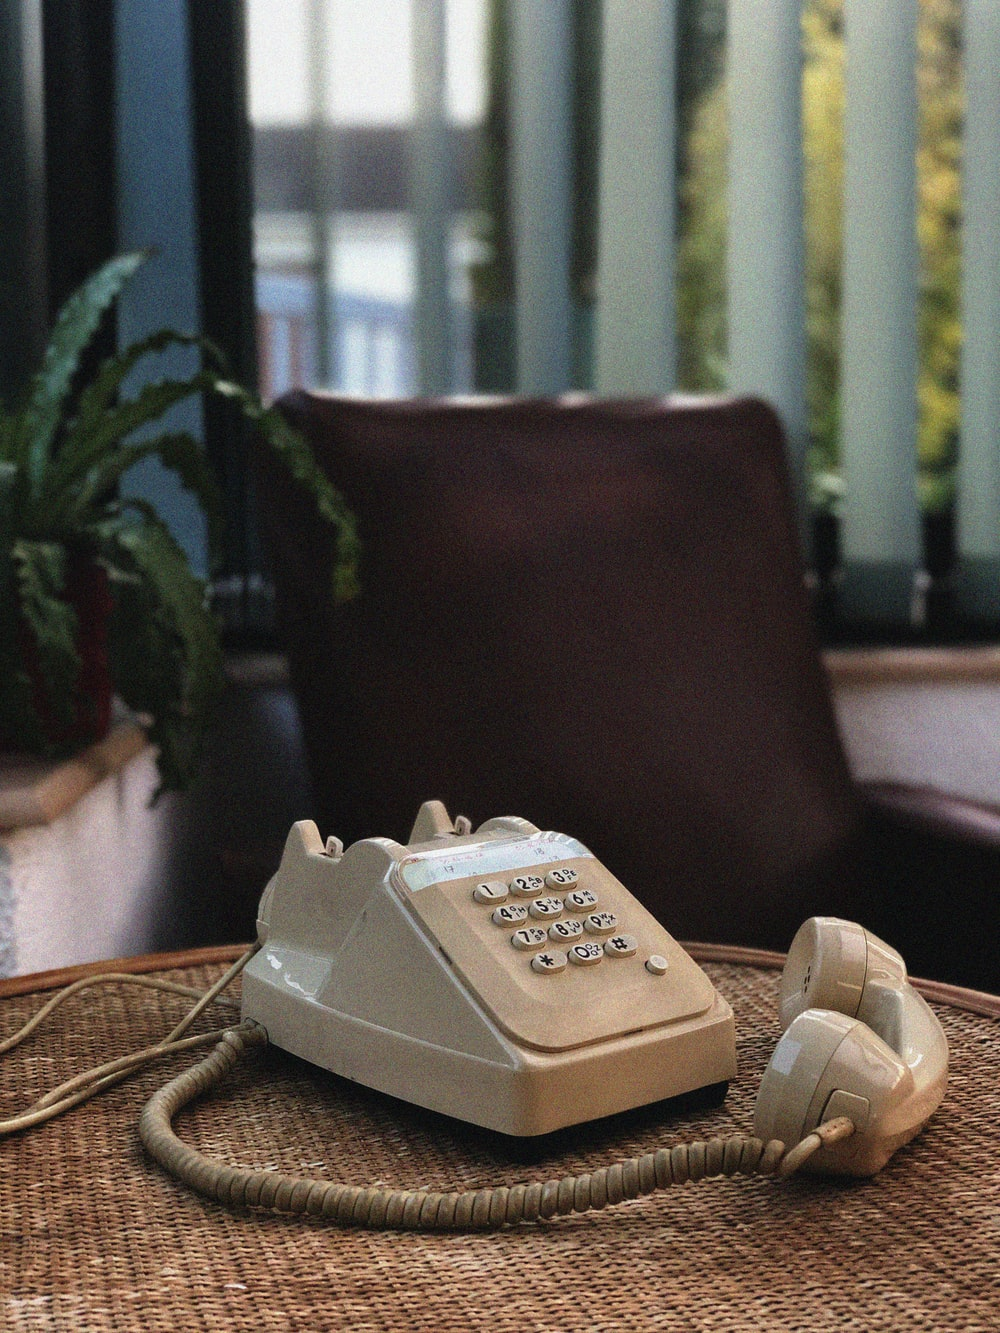 white and gray ip desk phone on brown wooden table